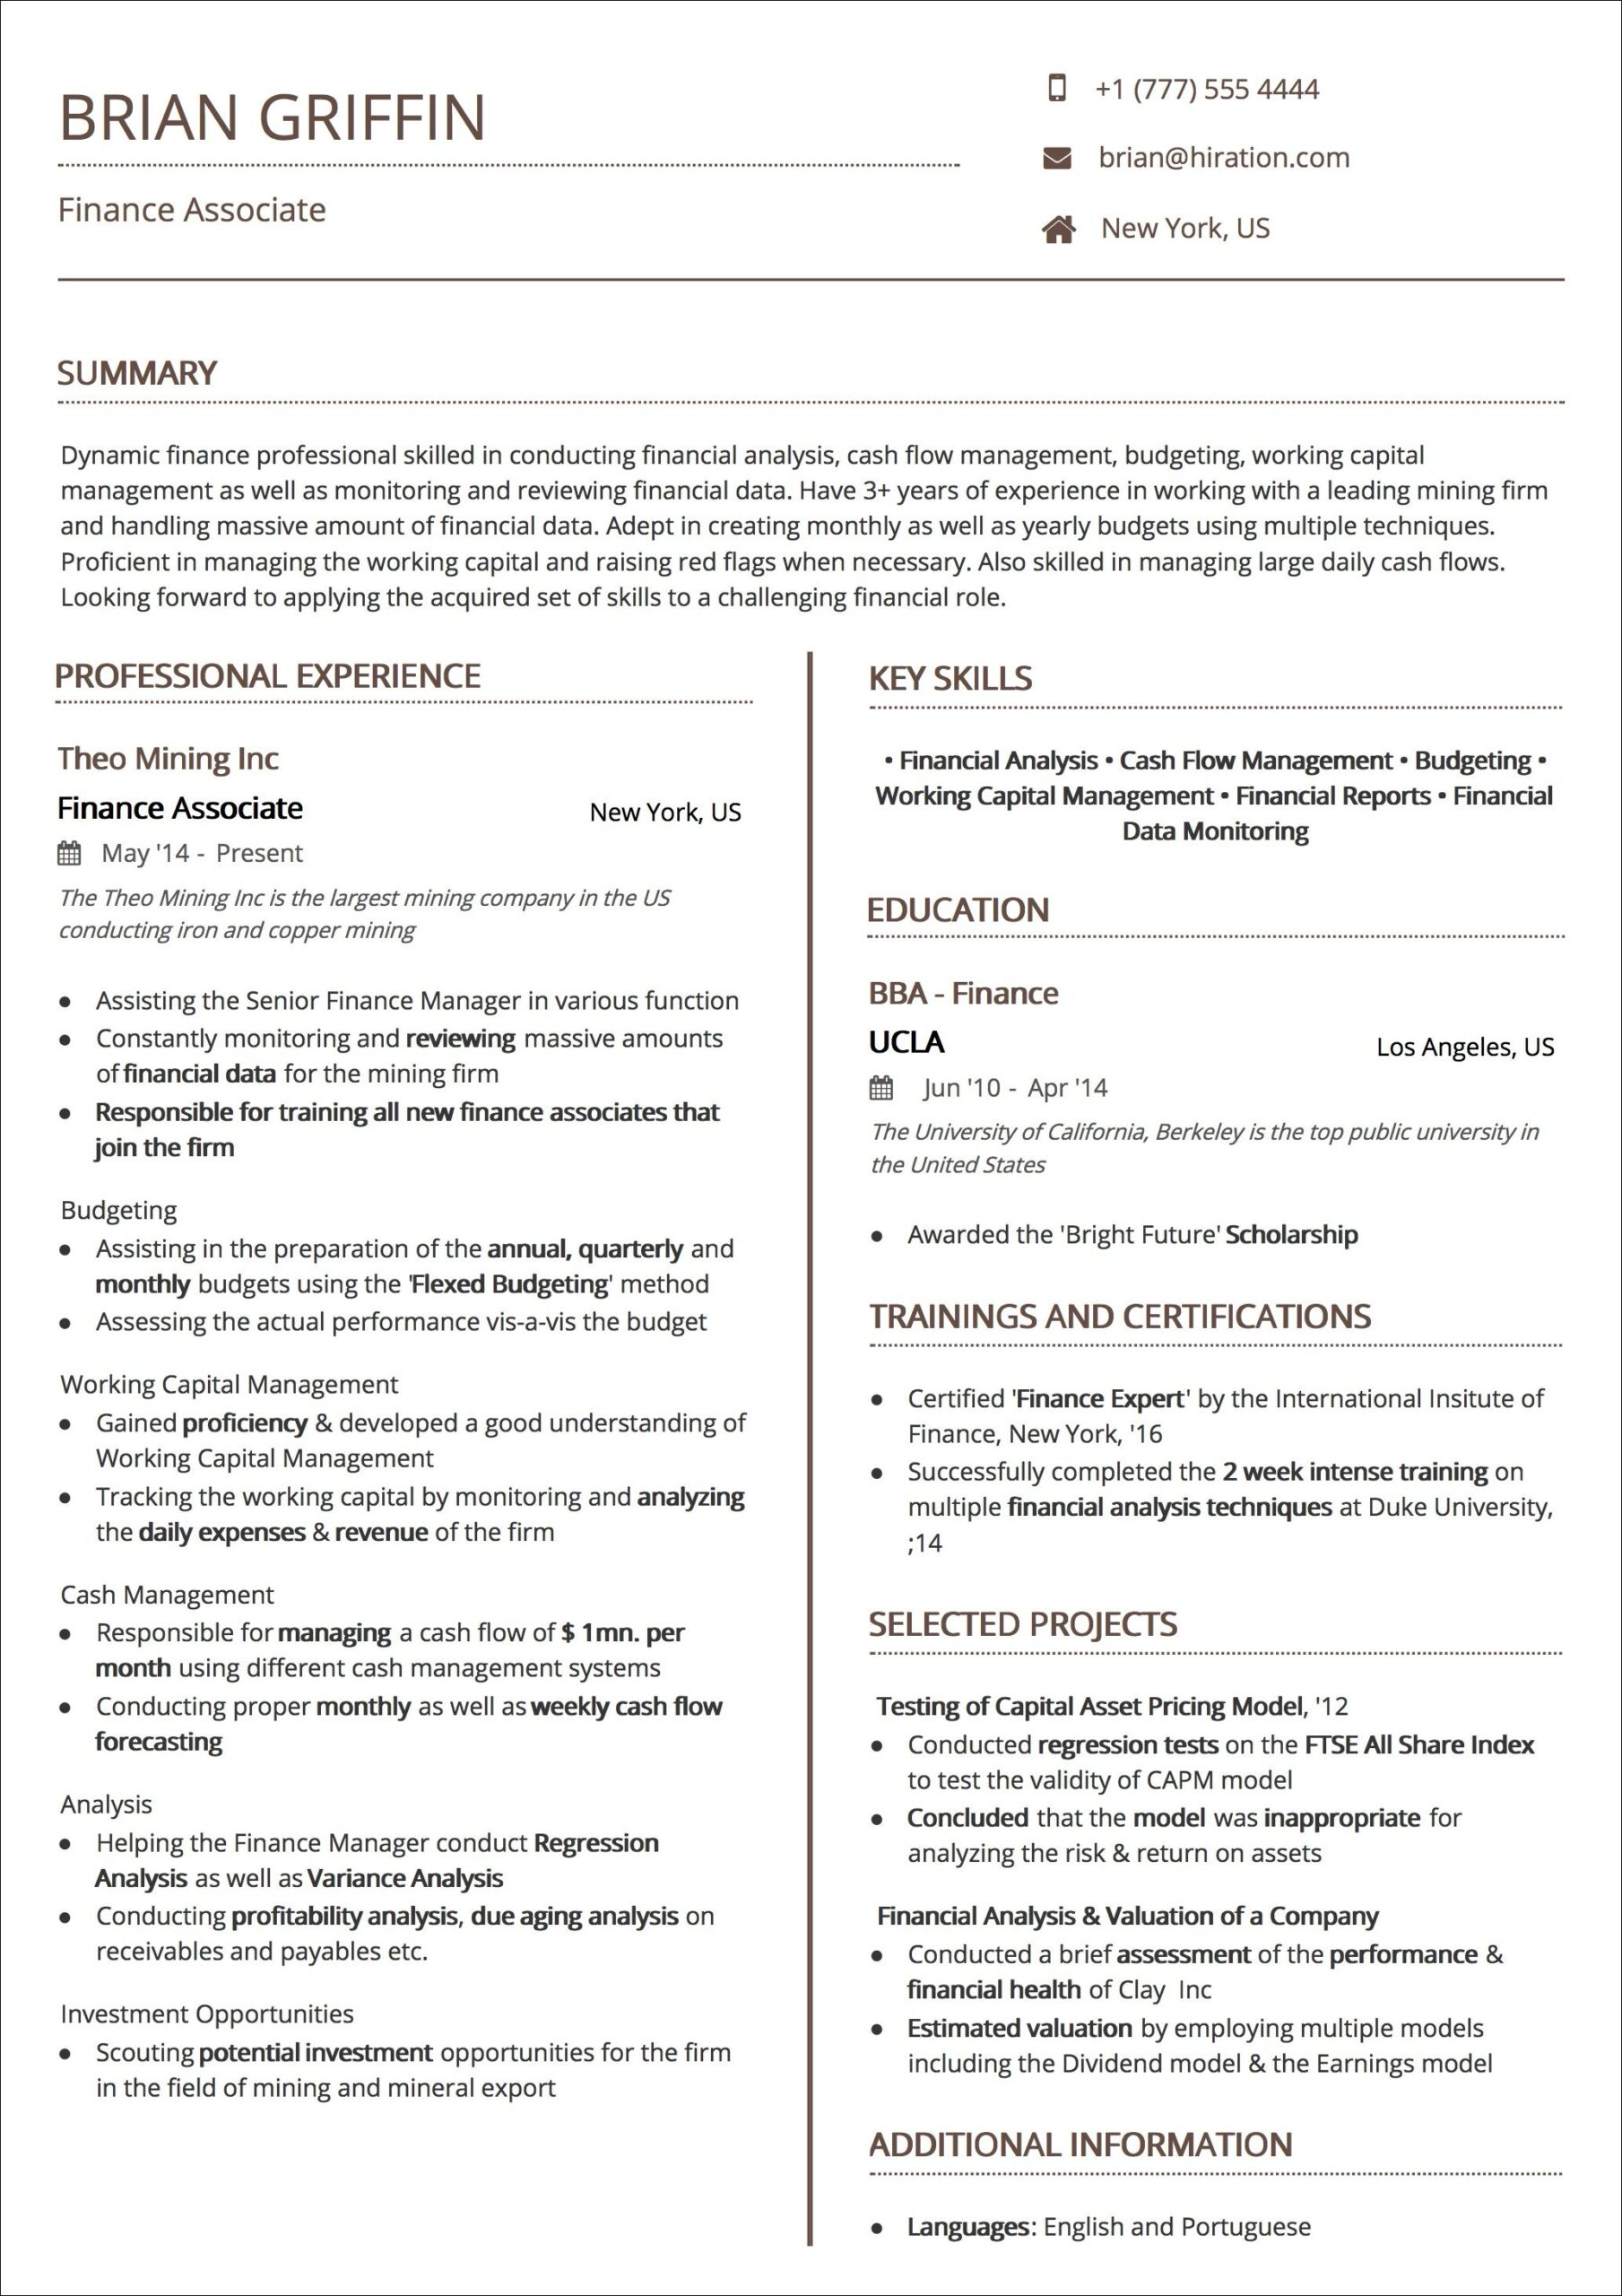 resume templates the guide to choosing best template ats scannable examples uniform Resume Ats Scannable Resume Examples